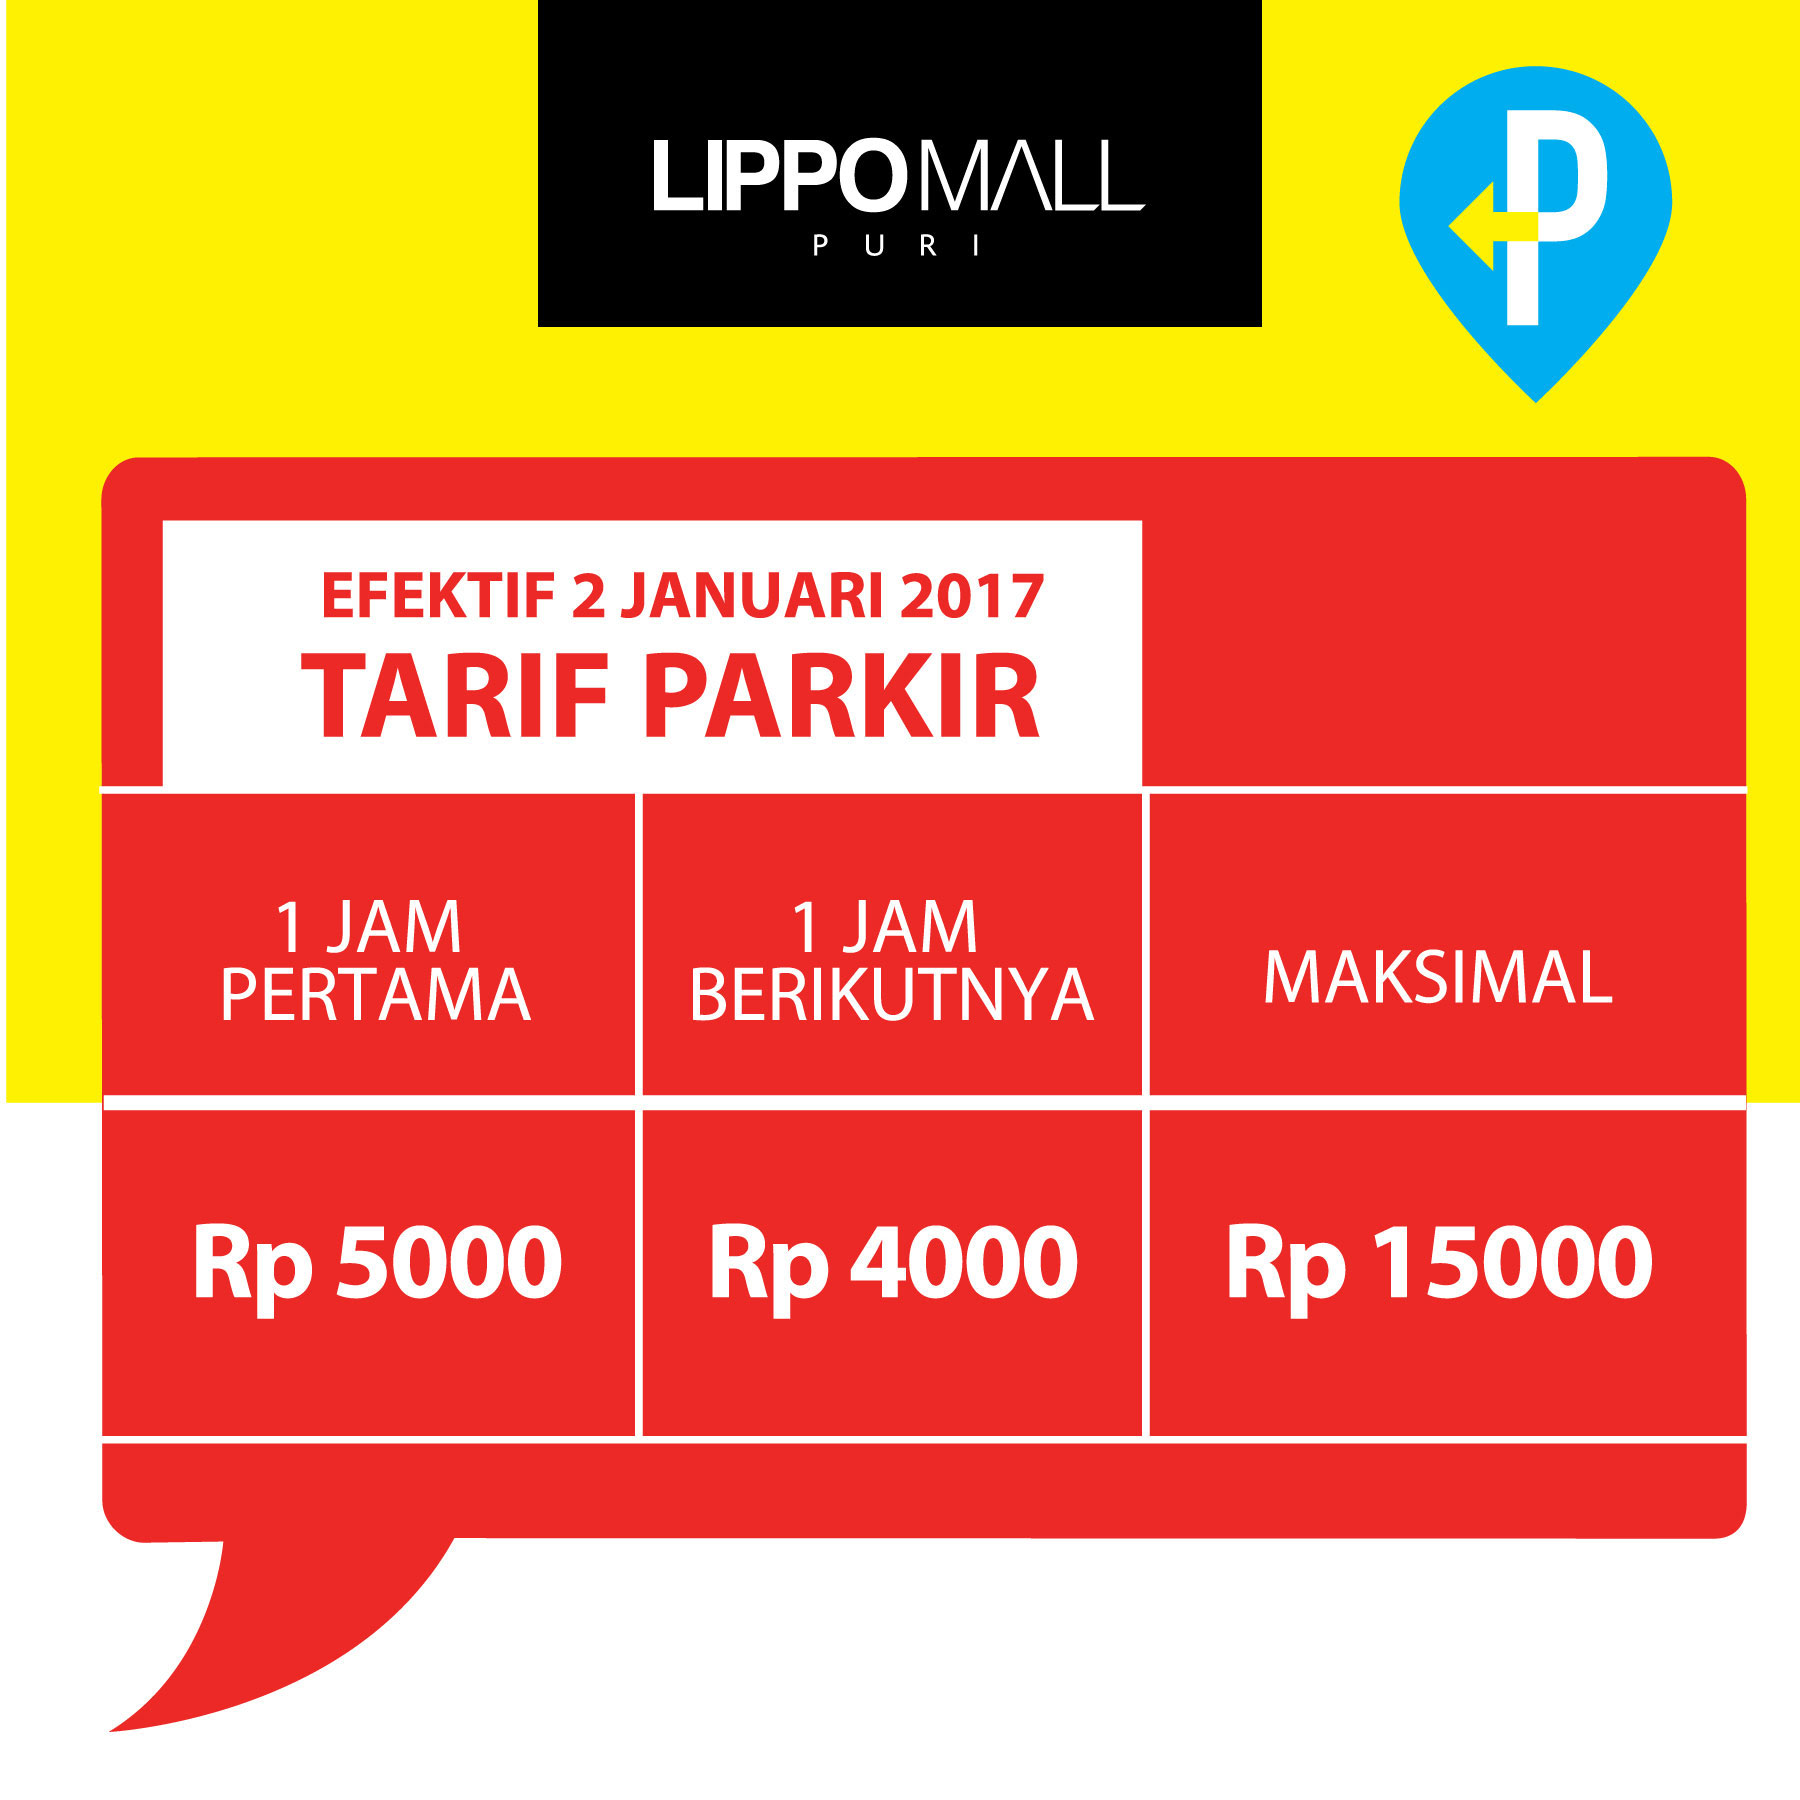 pps in lippo mall puri st. moritz